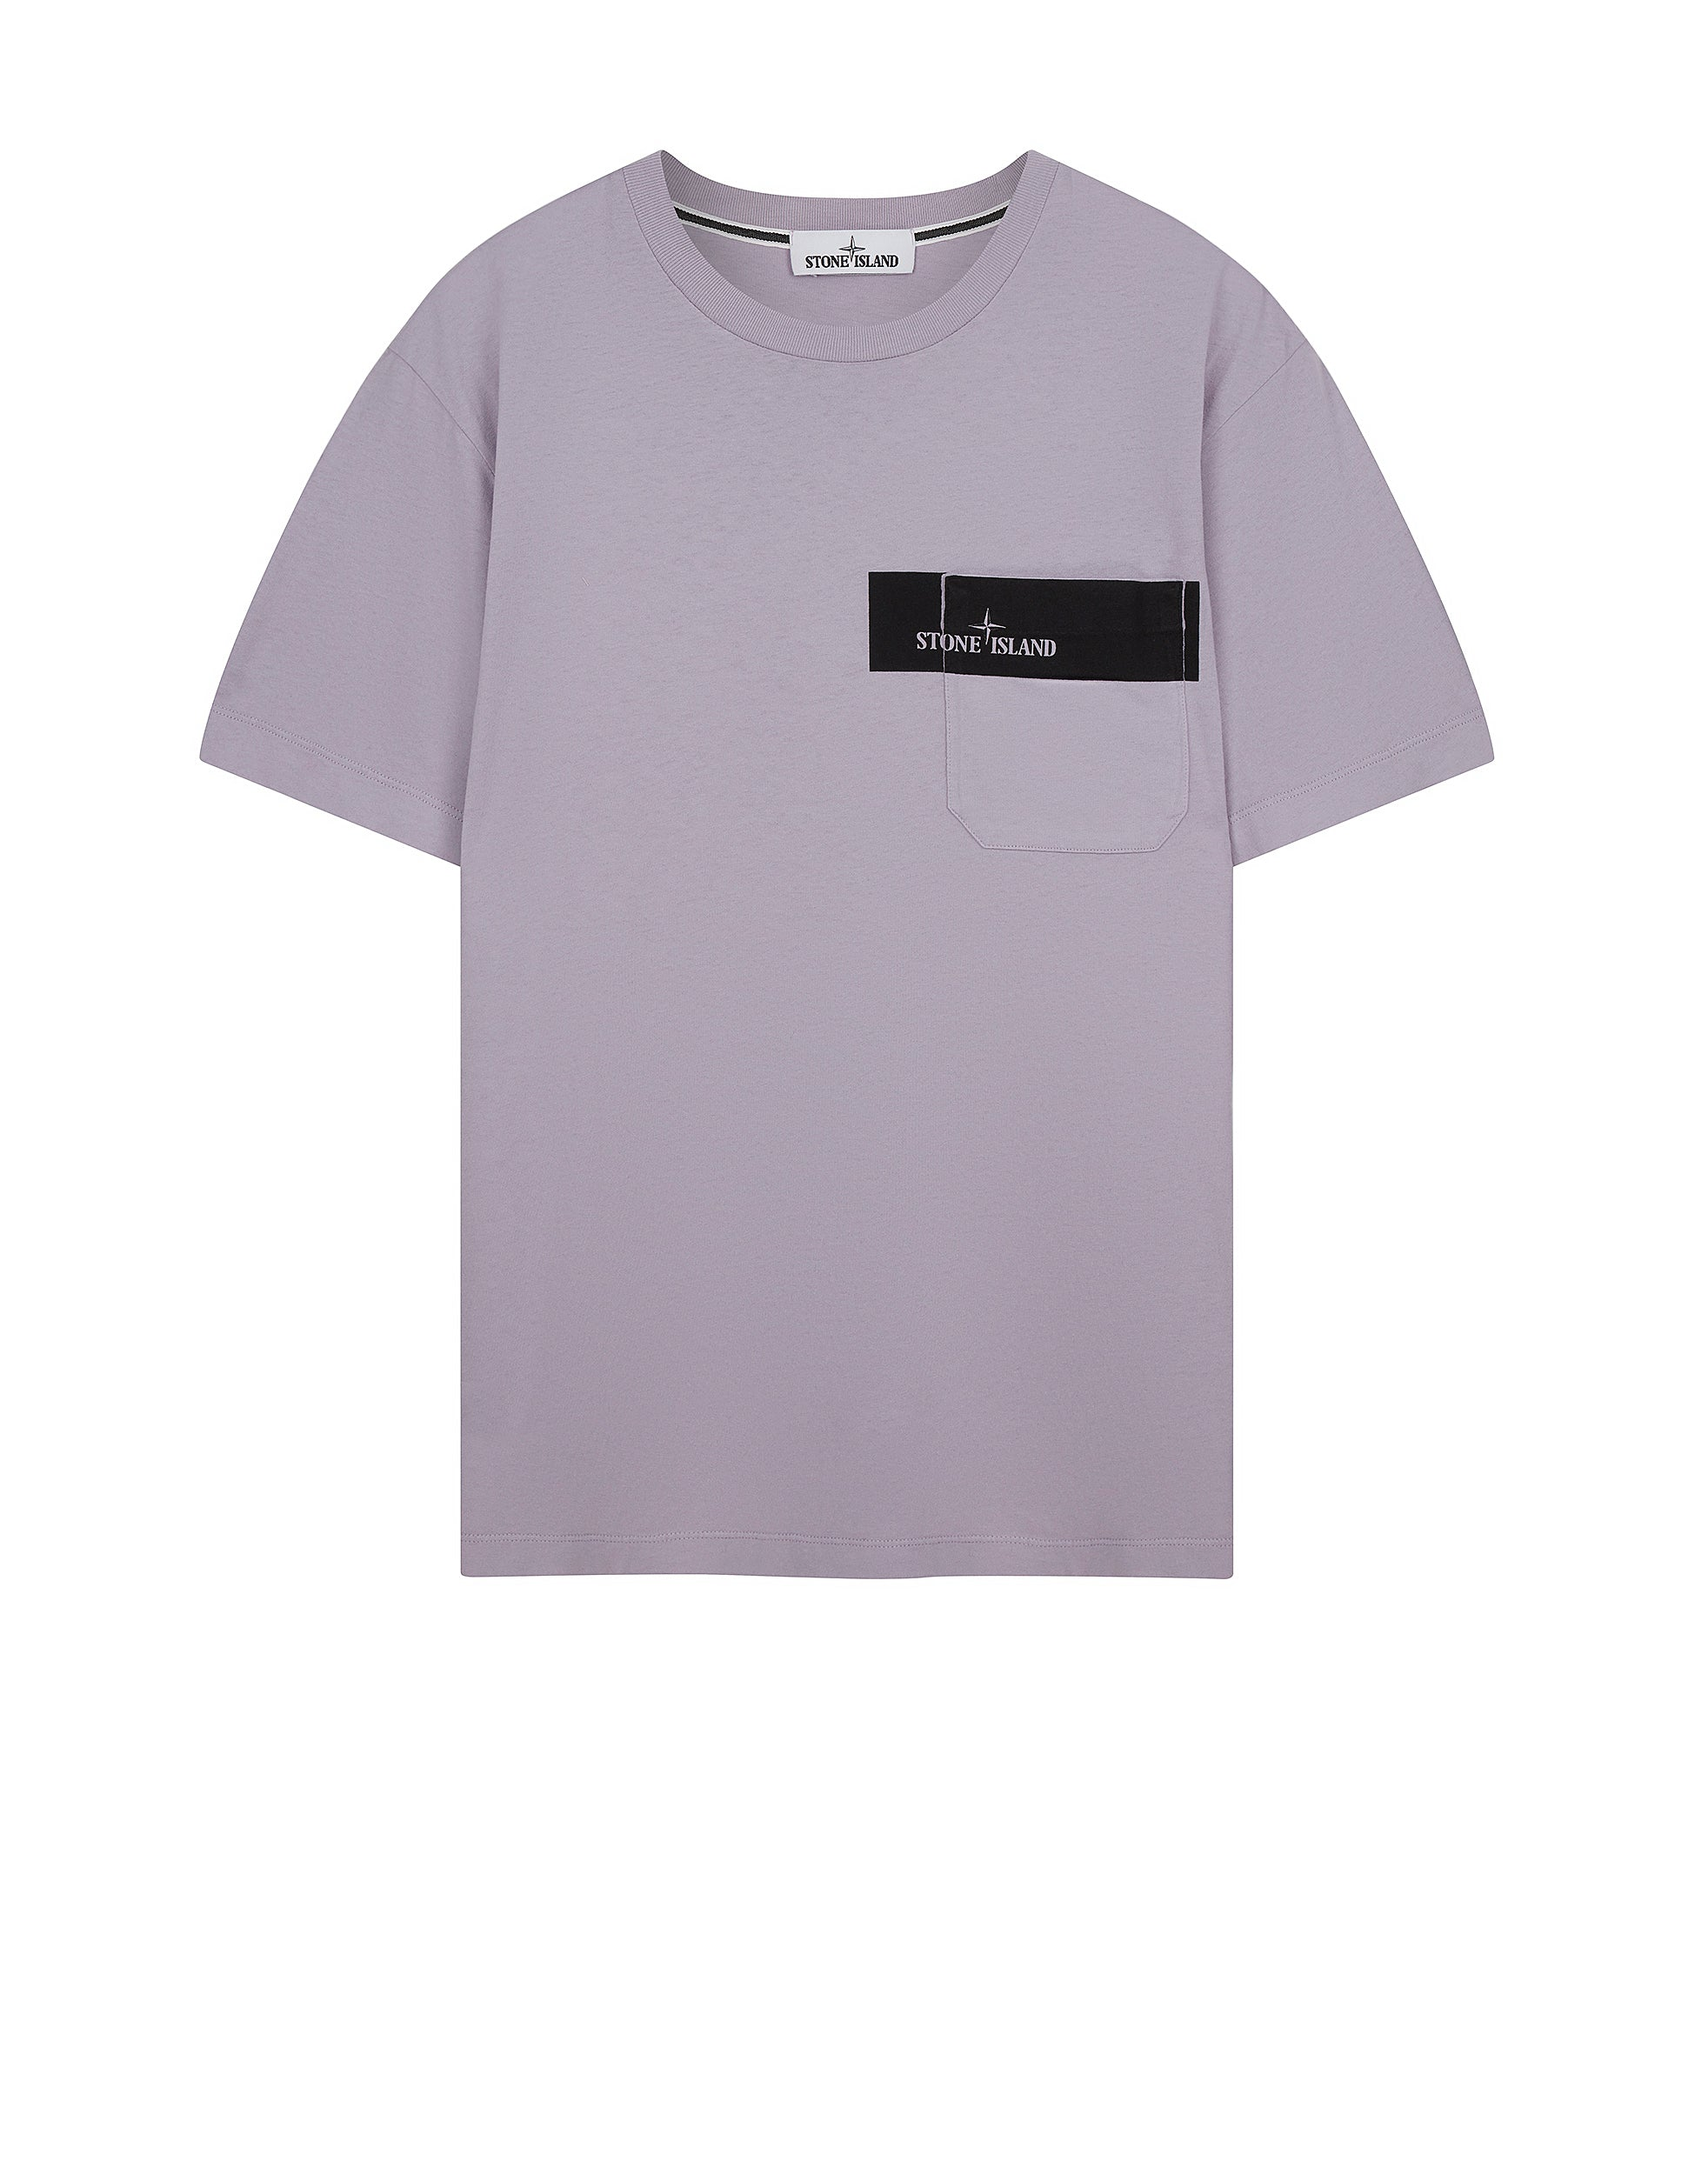 Beautiful Stone Island UK | 24794 POCKET LOGO T-Shirt in Lavender | Stone  RD34